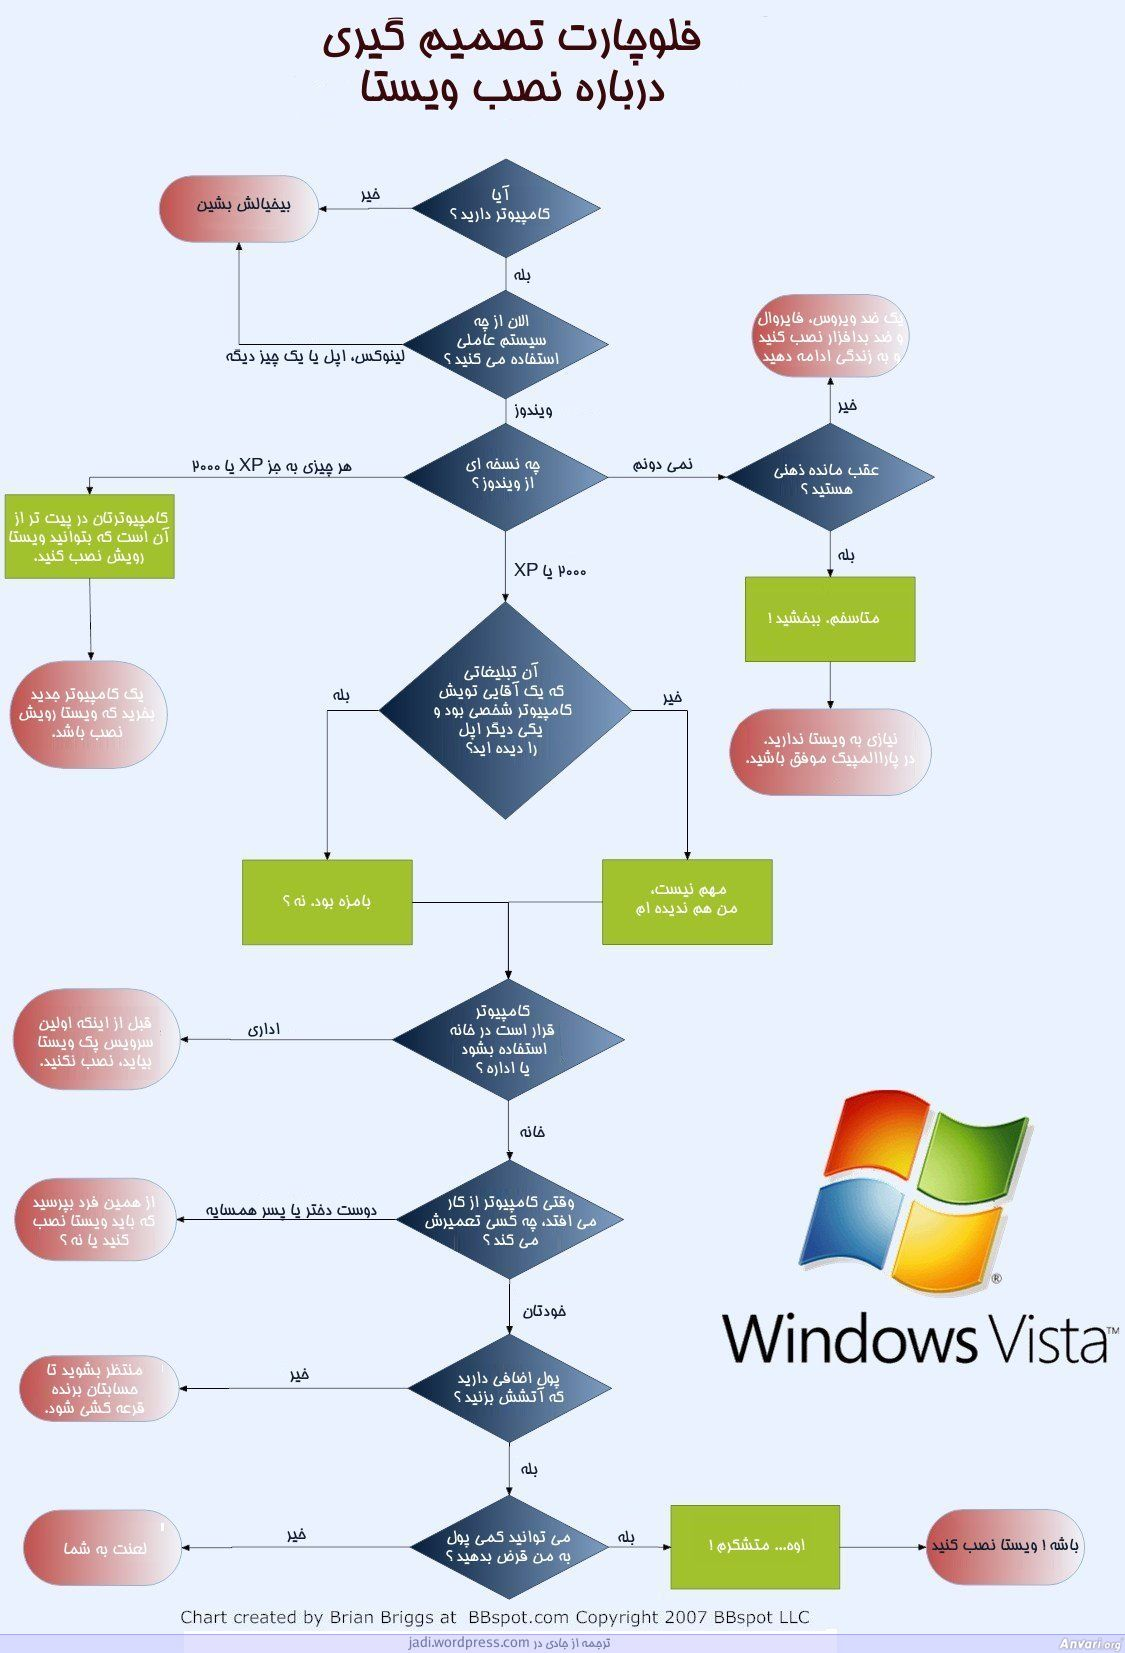 Installing Windows Vista - Installing Windows Vista